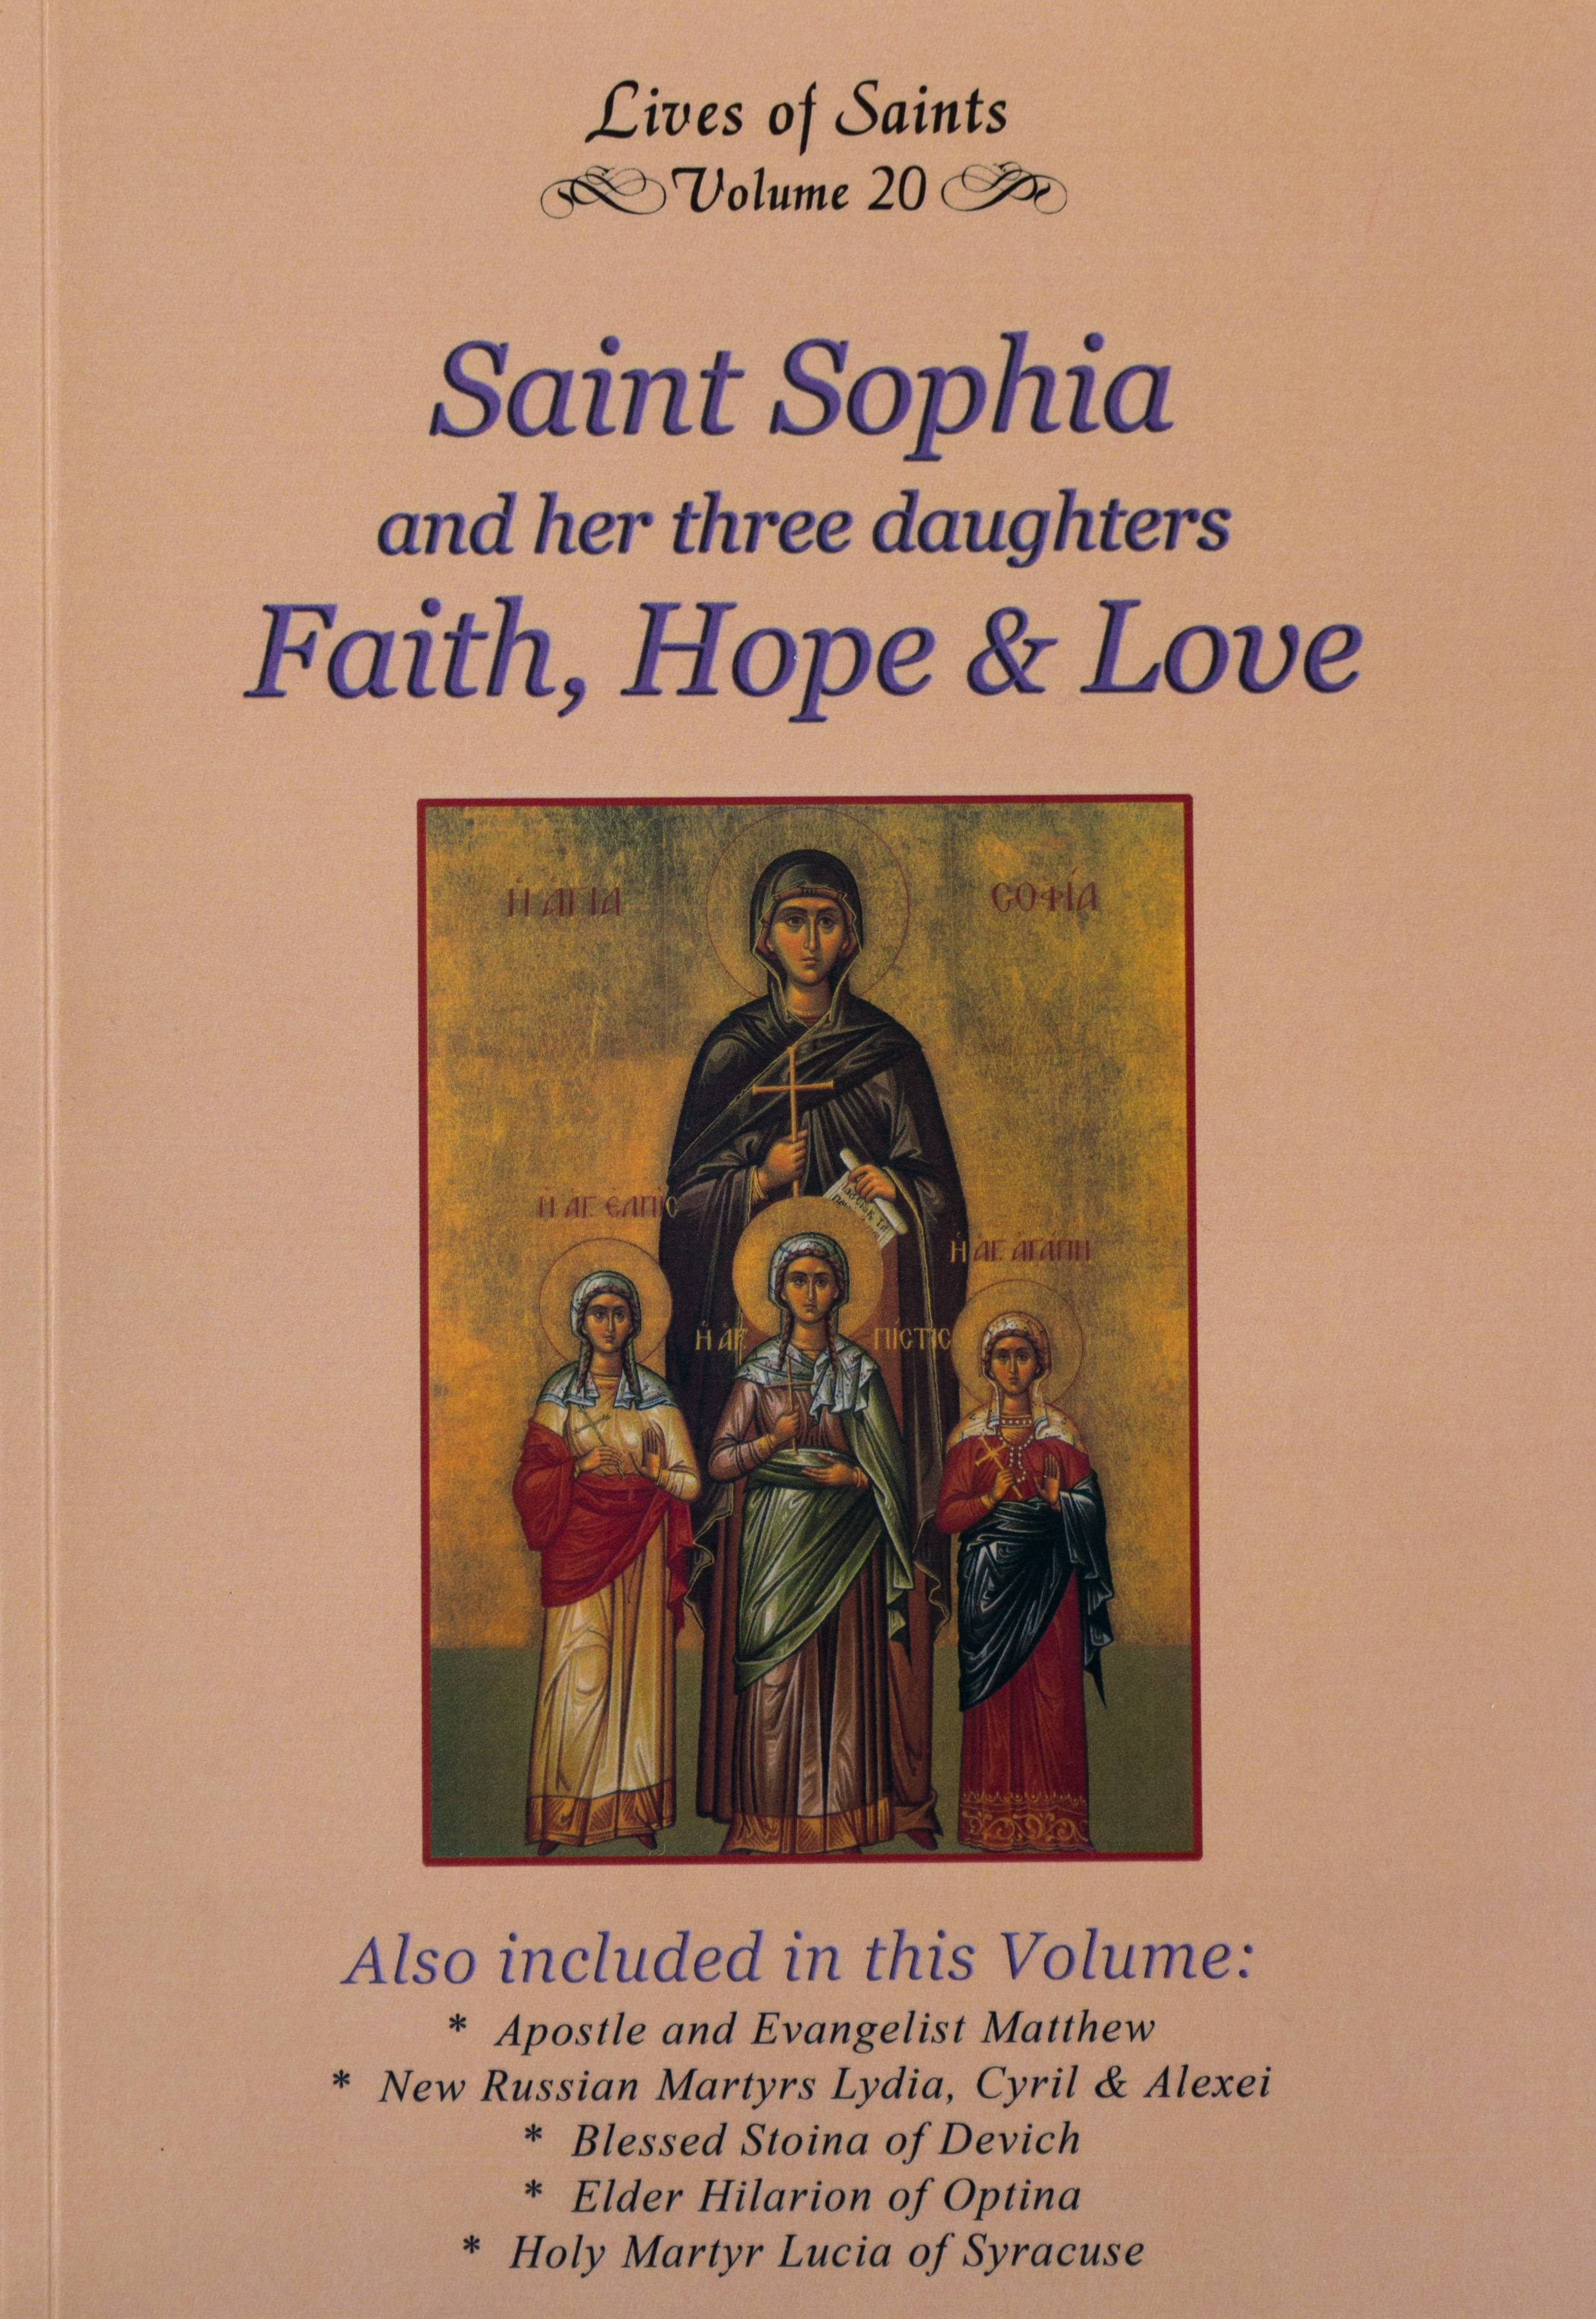 Lives of Saints Vol. 20: Saint Sophia and her three daughters Faith, Hope & Love